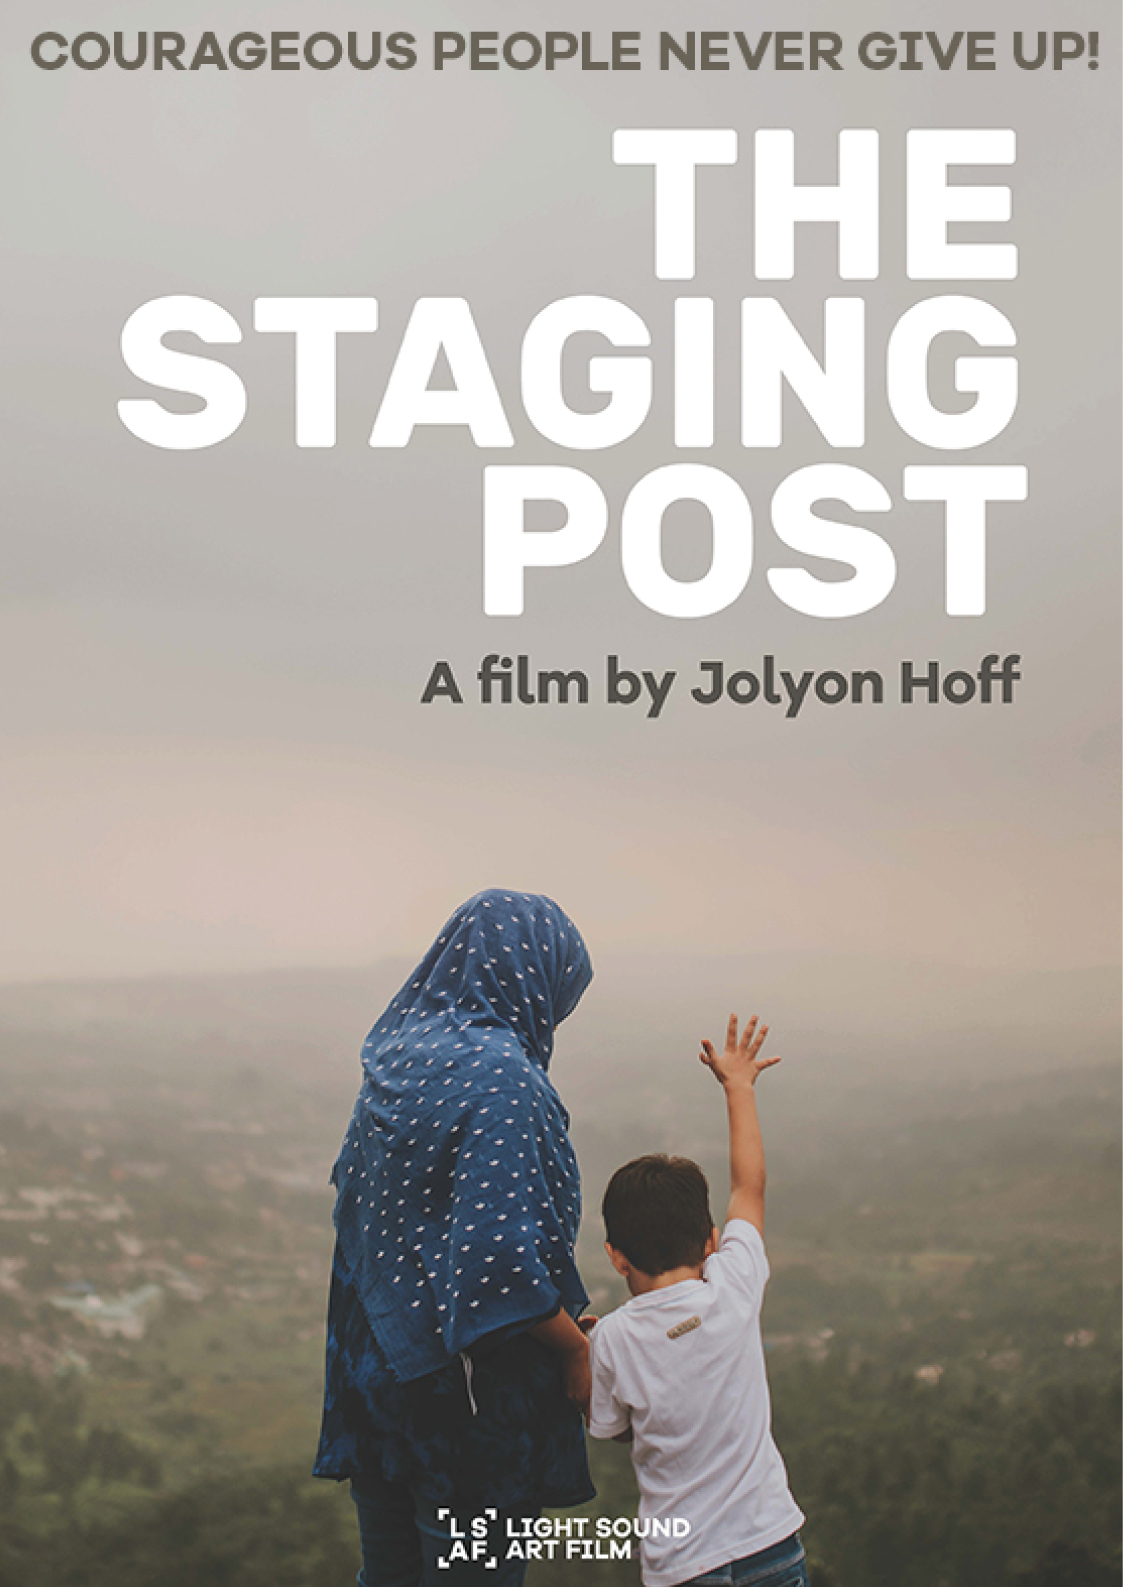 The Staging Post Q&A movie poster